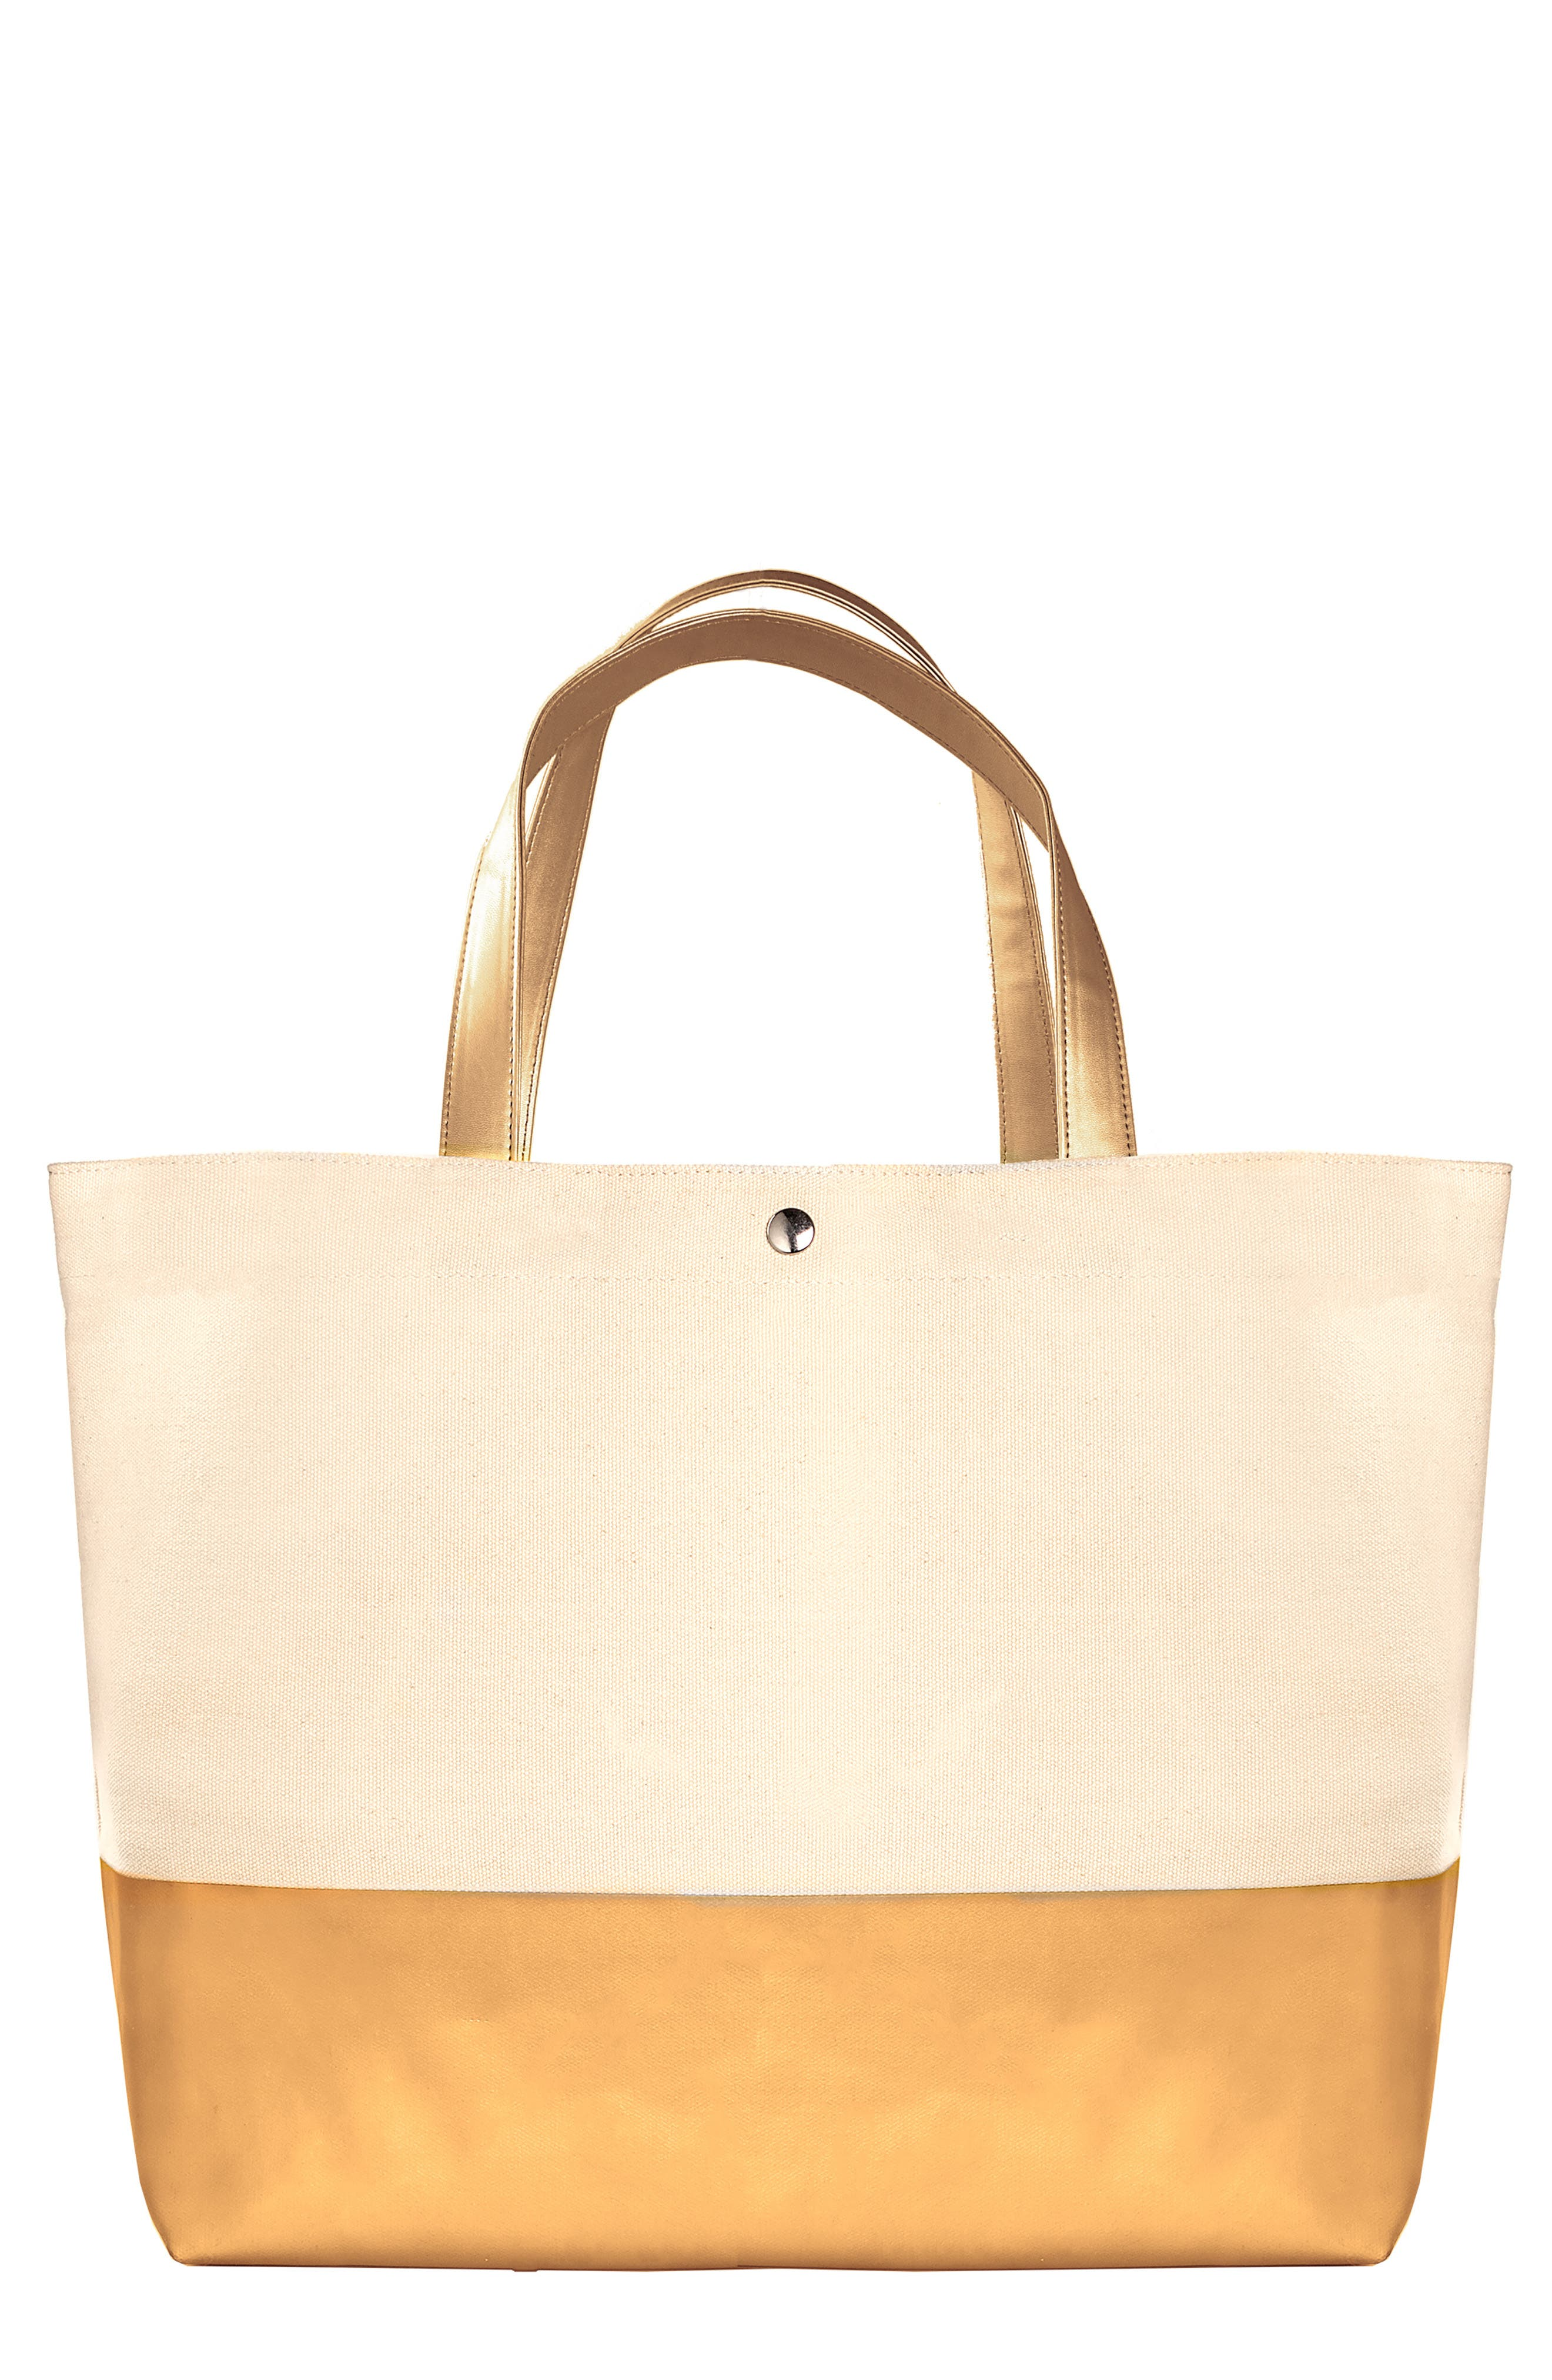 Monogram Canvas Tote,                             Alternate thumbnail 2, color,                             GOLD